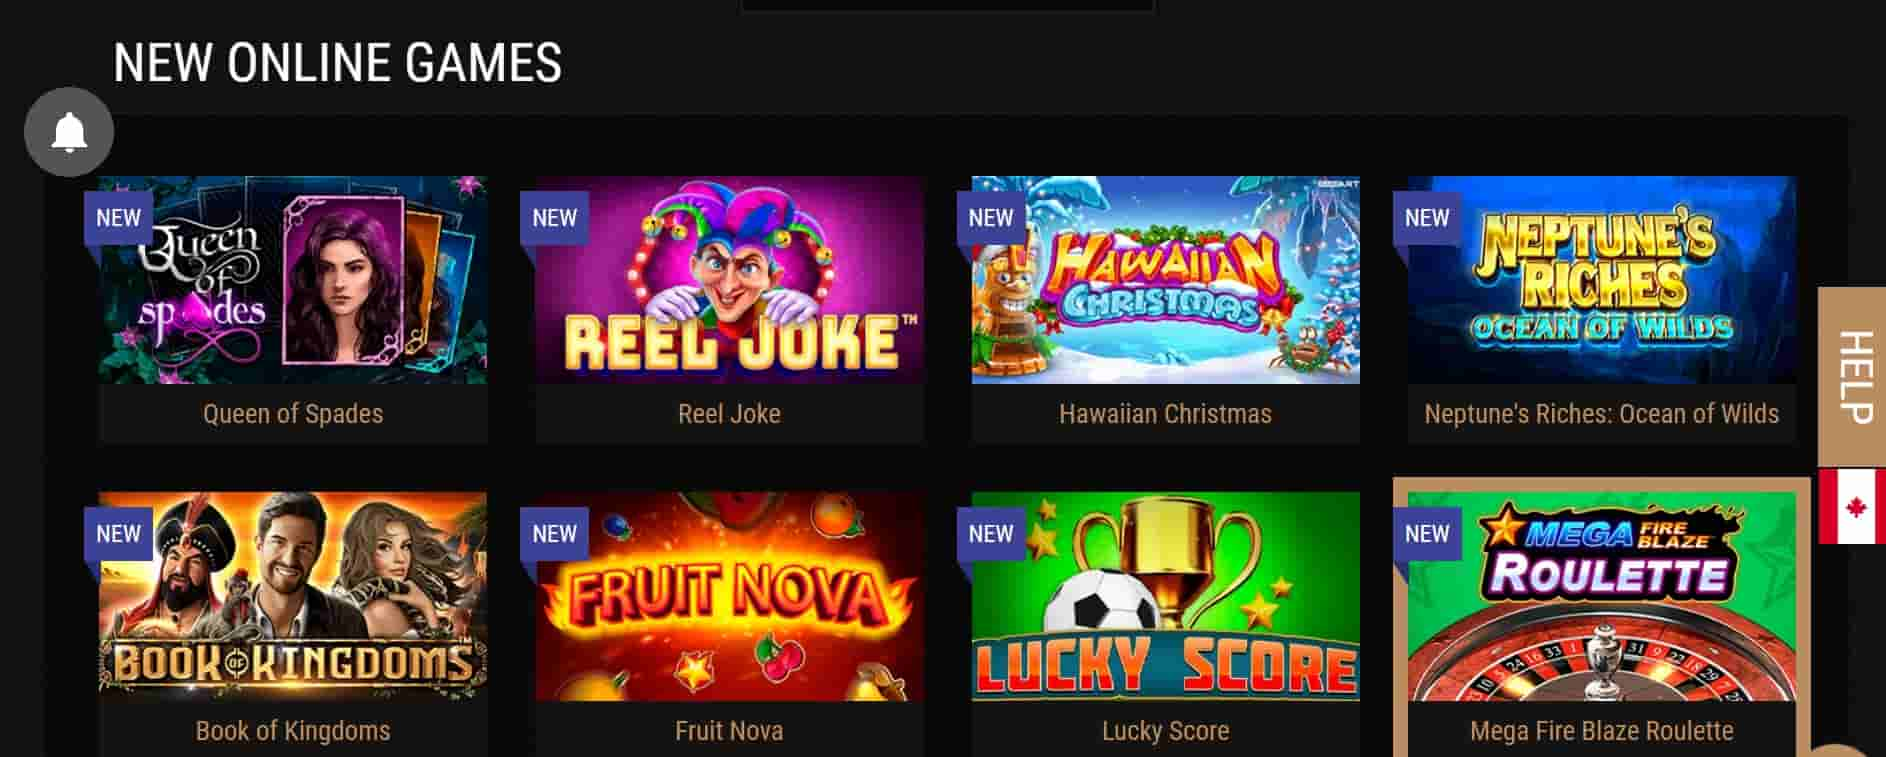 kingbilly new games